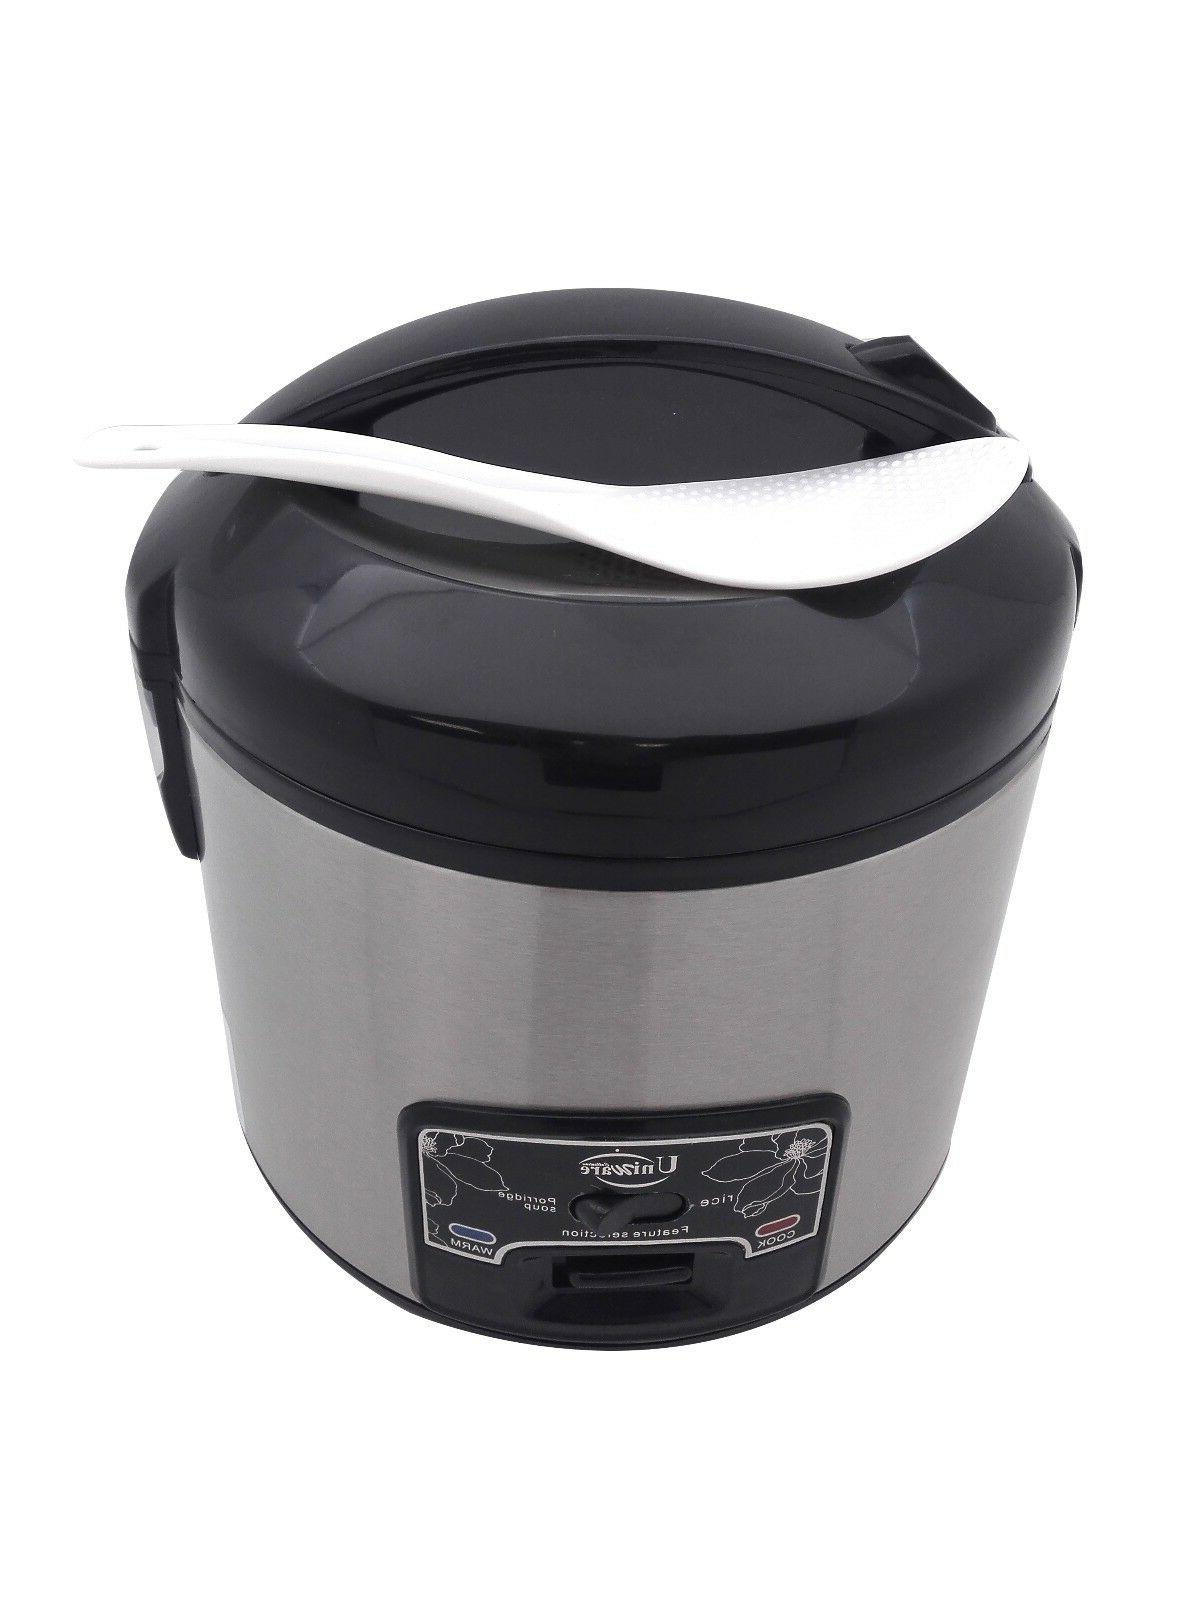 Uniware High Quality Electric Deluxe Rice Cups,Durable,Black